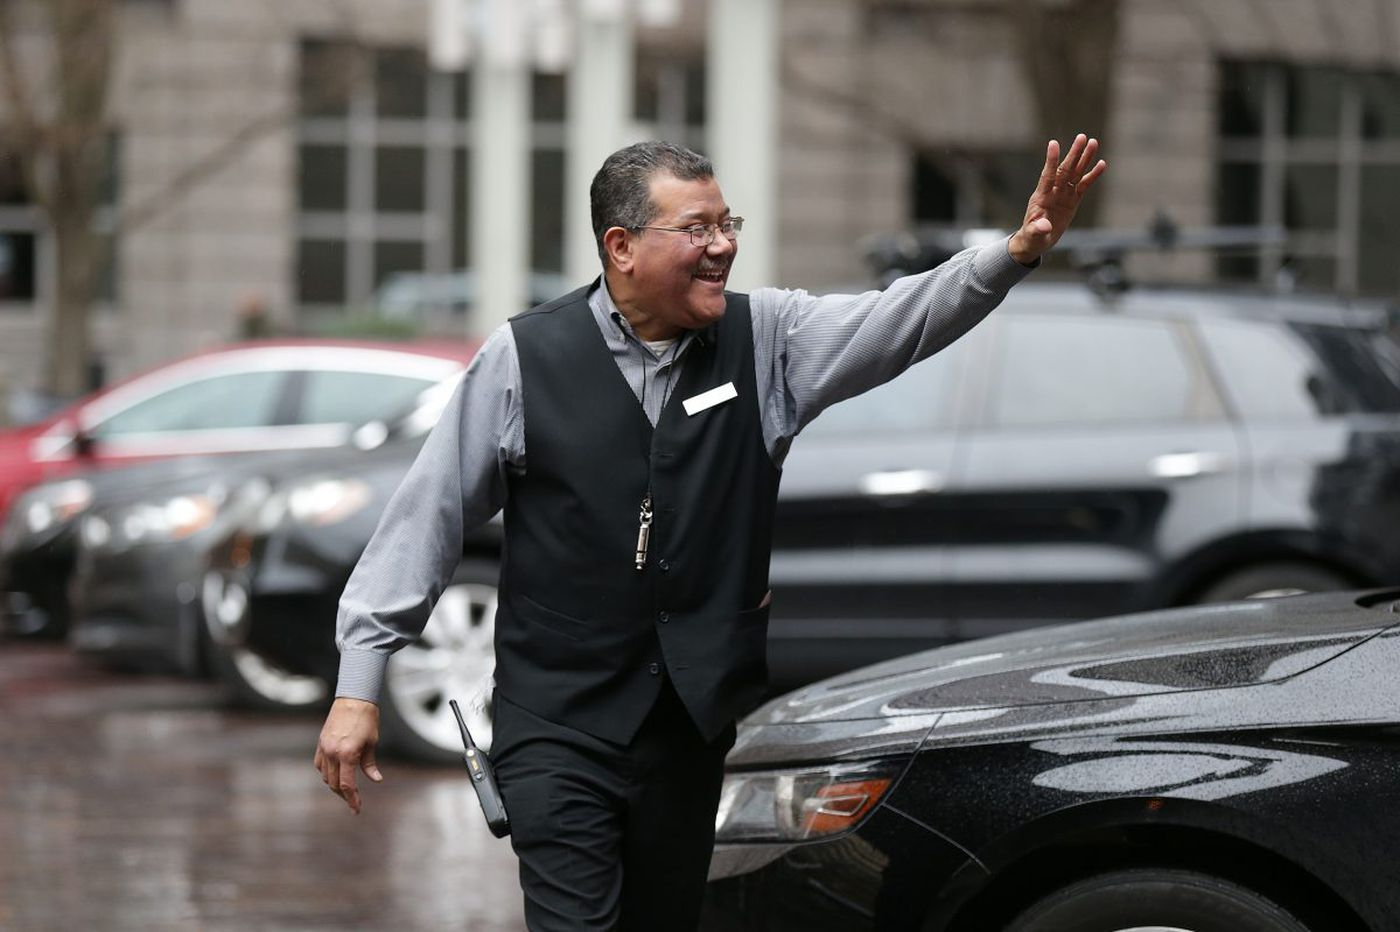 For 35 years, Logan Hotel doorman has had a window into Philly | We the People